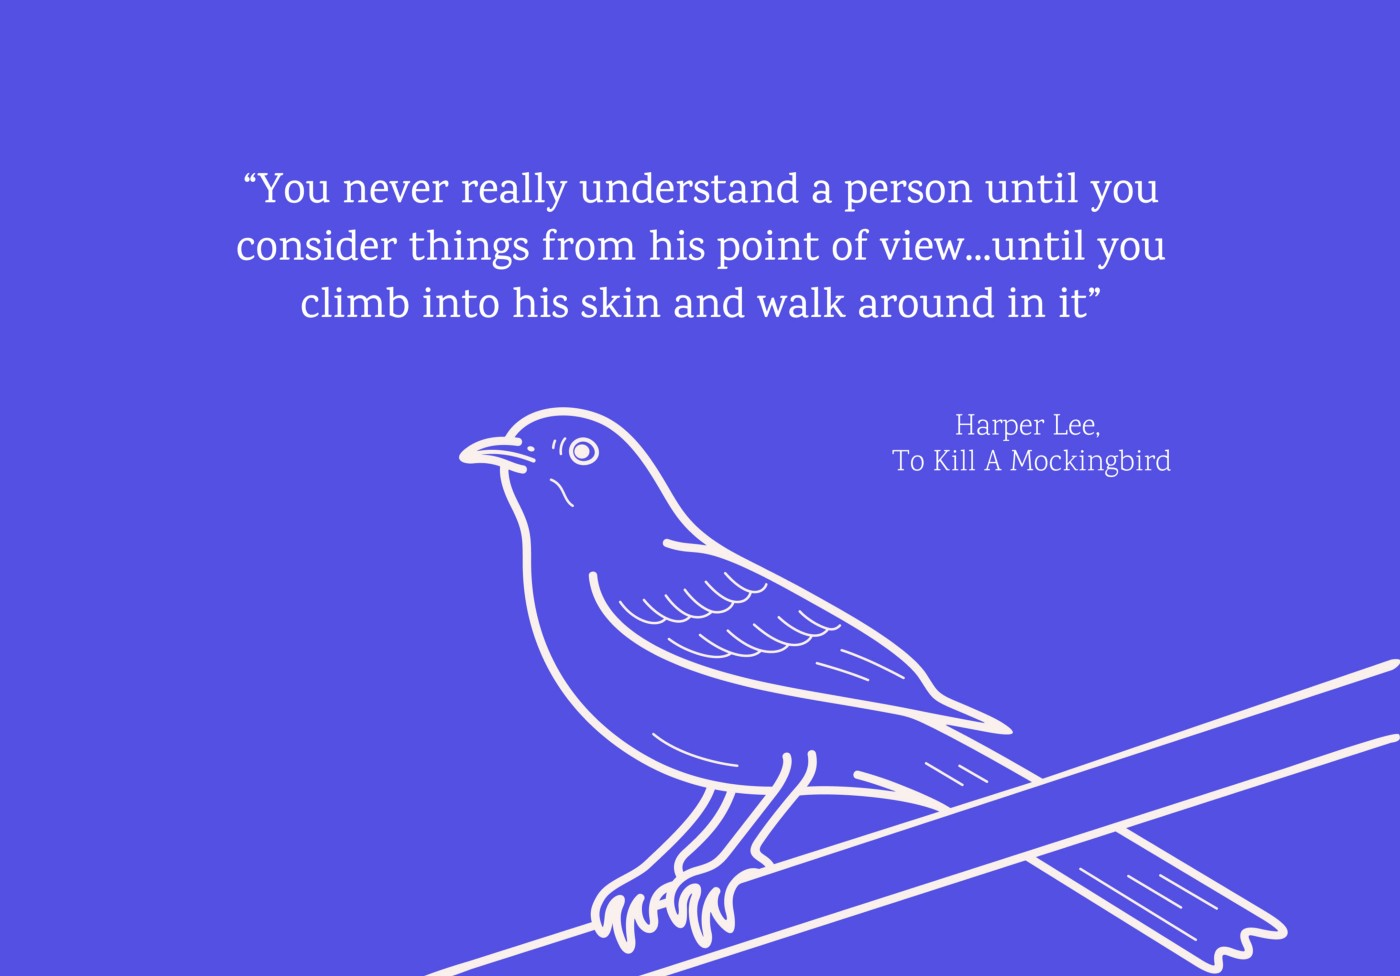 a mockingbird illustration with quote from to kill a mockingbird novel